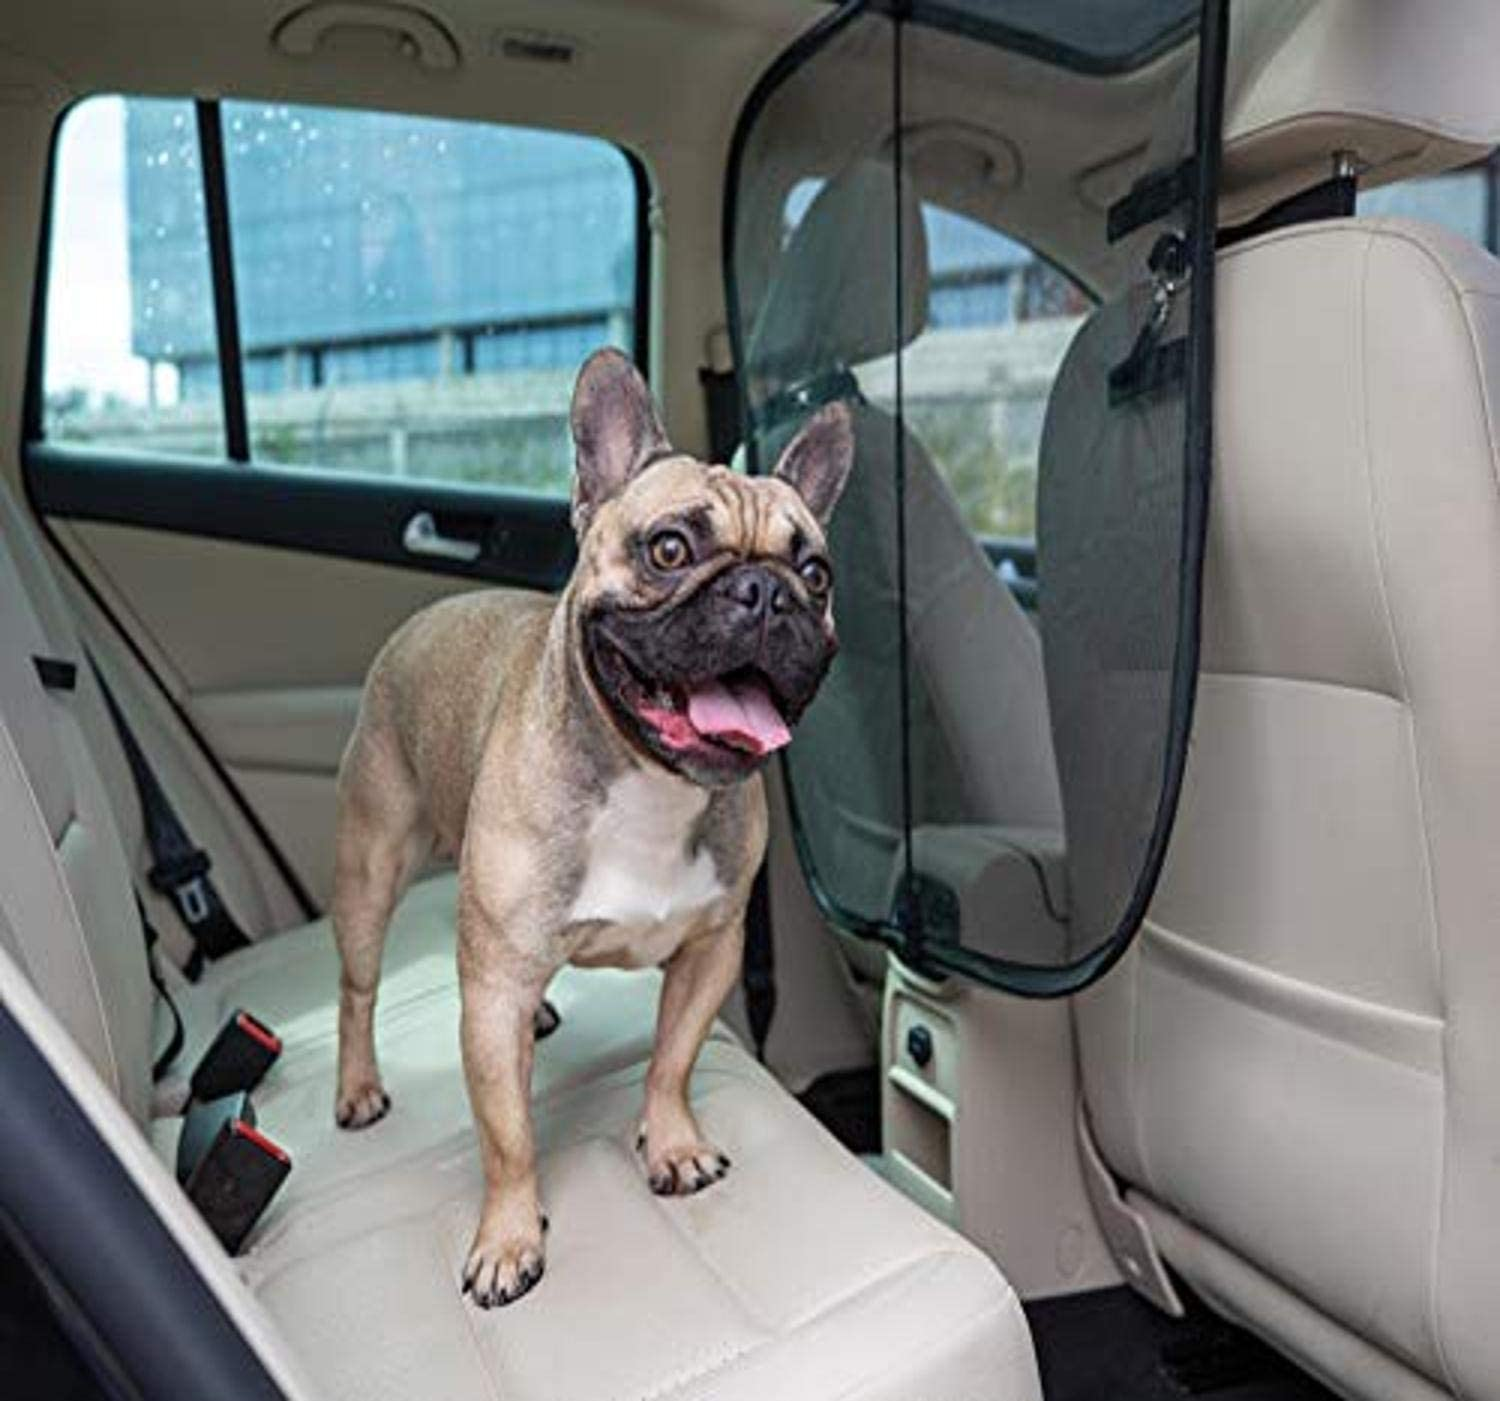 Auto Car Pet Barrier With Storage Pockets Blocks dog/'s access to front seat Dog